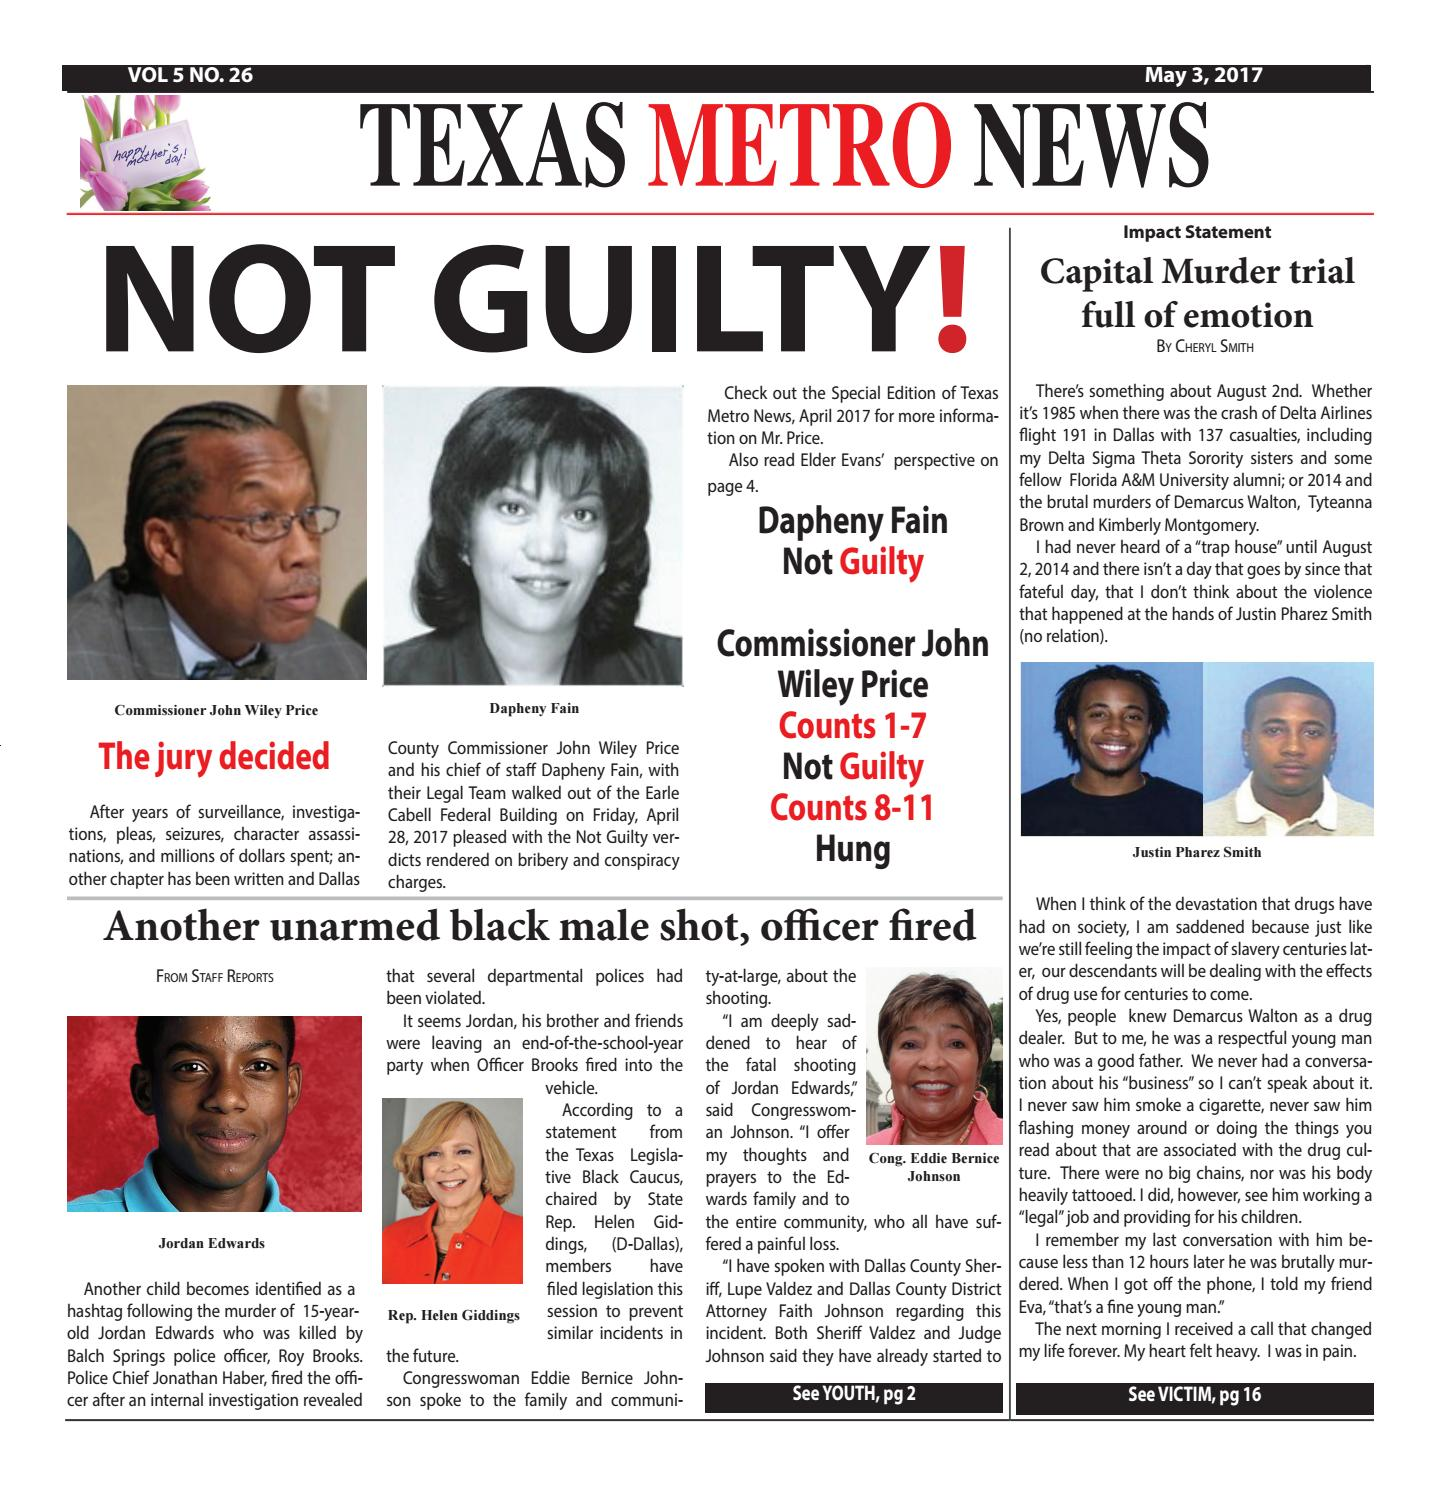 Texas metro news 5 5 17 by Cheryl Smith - issuu